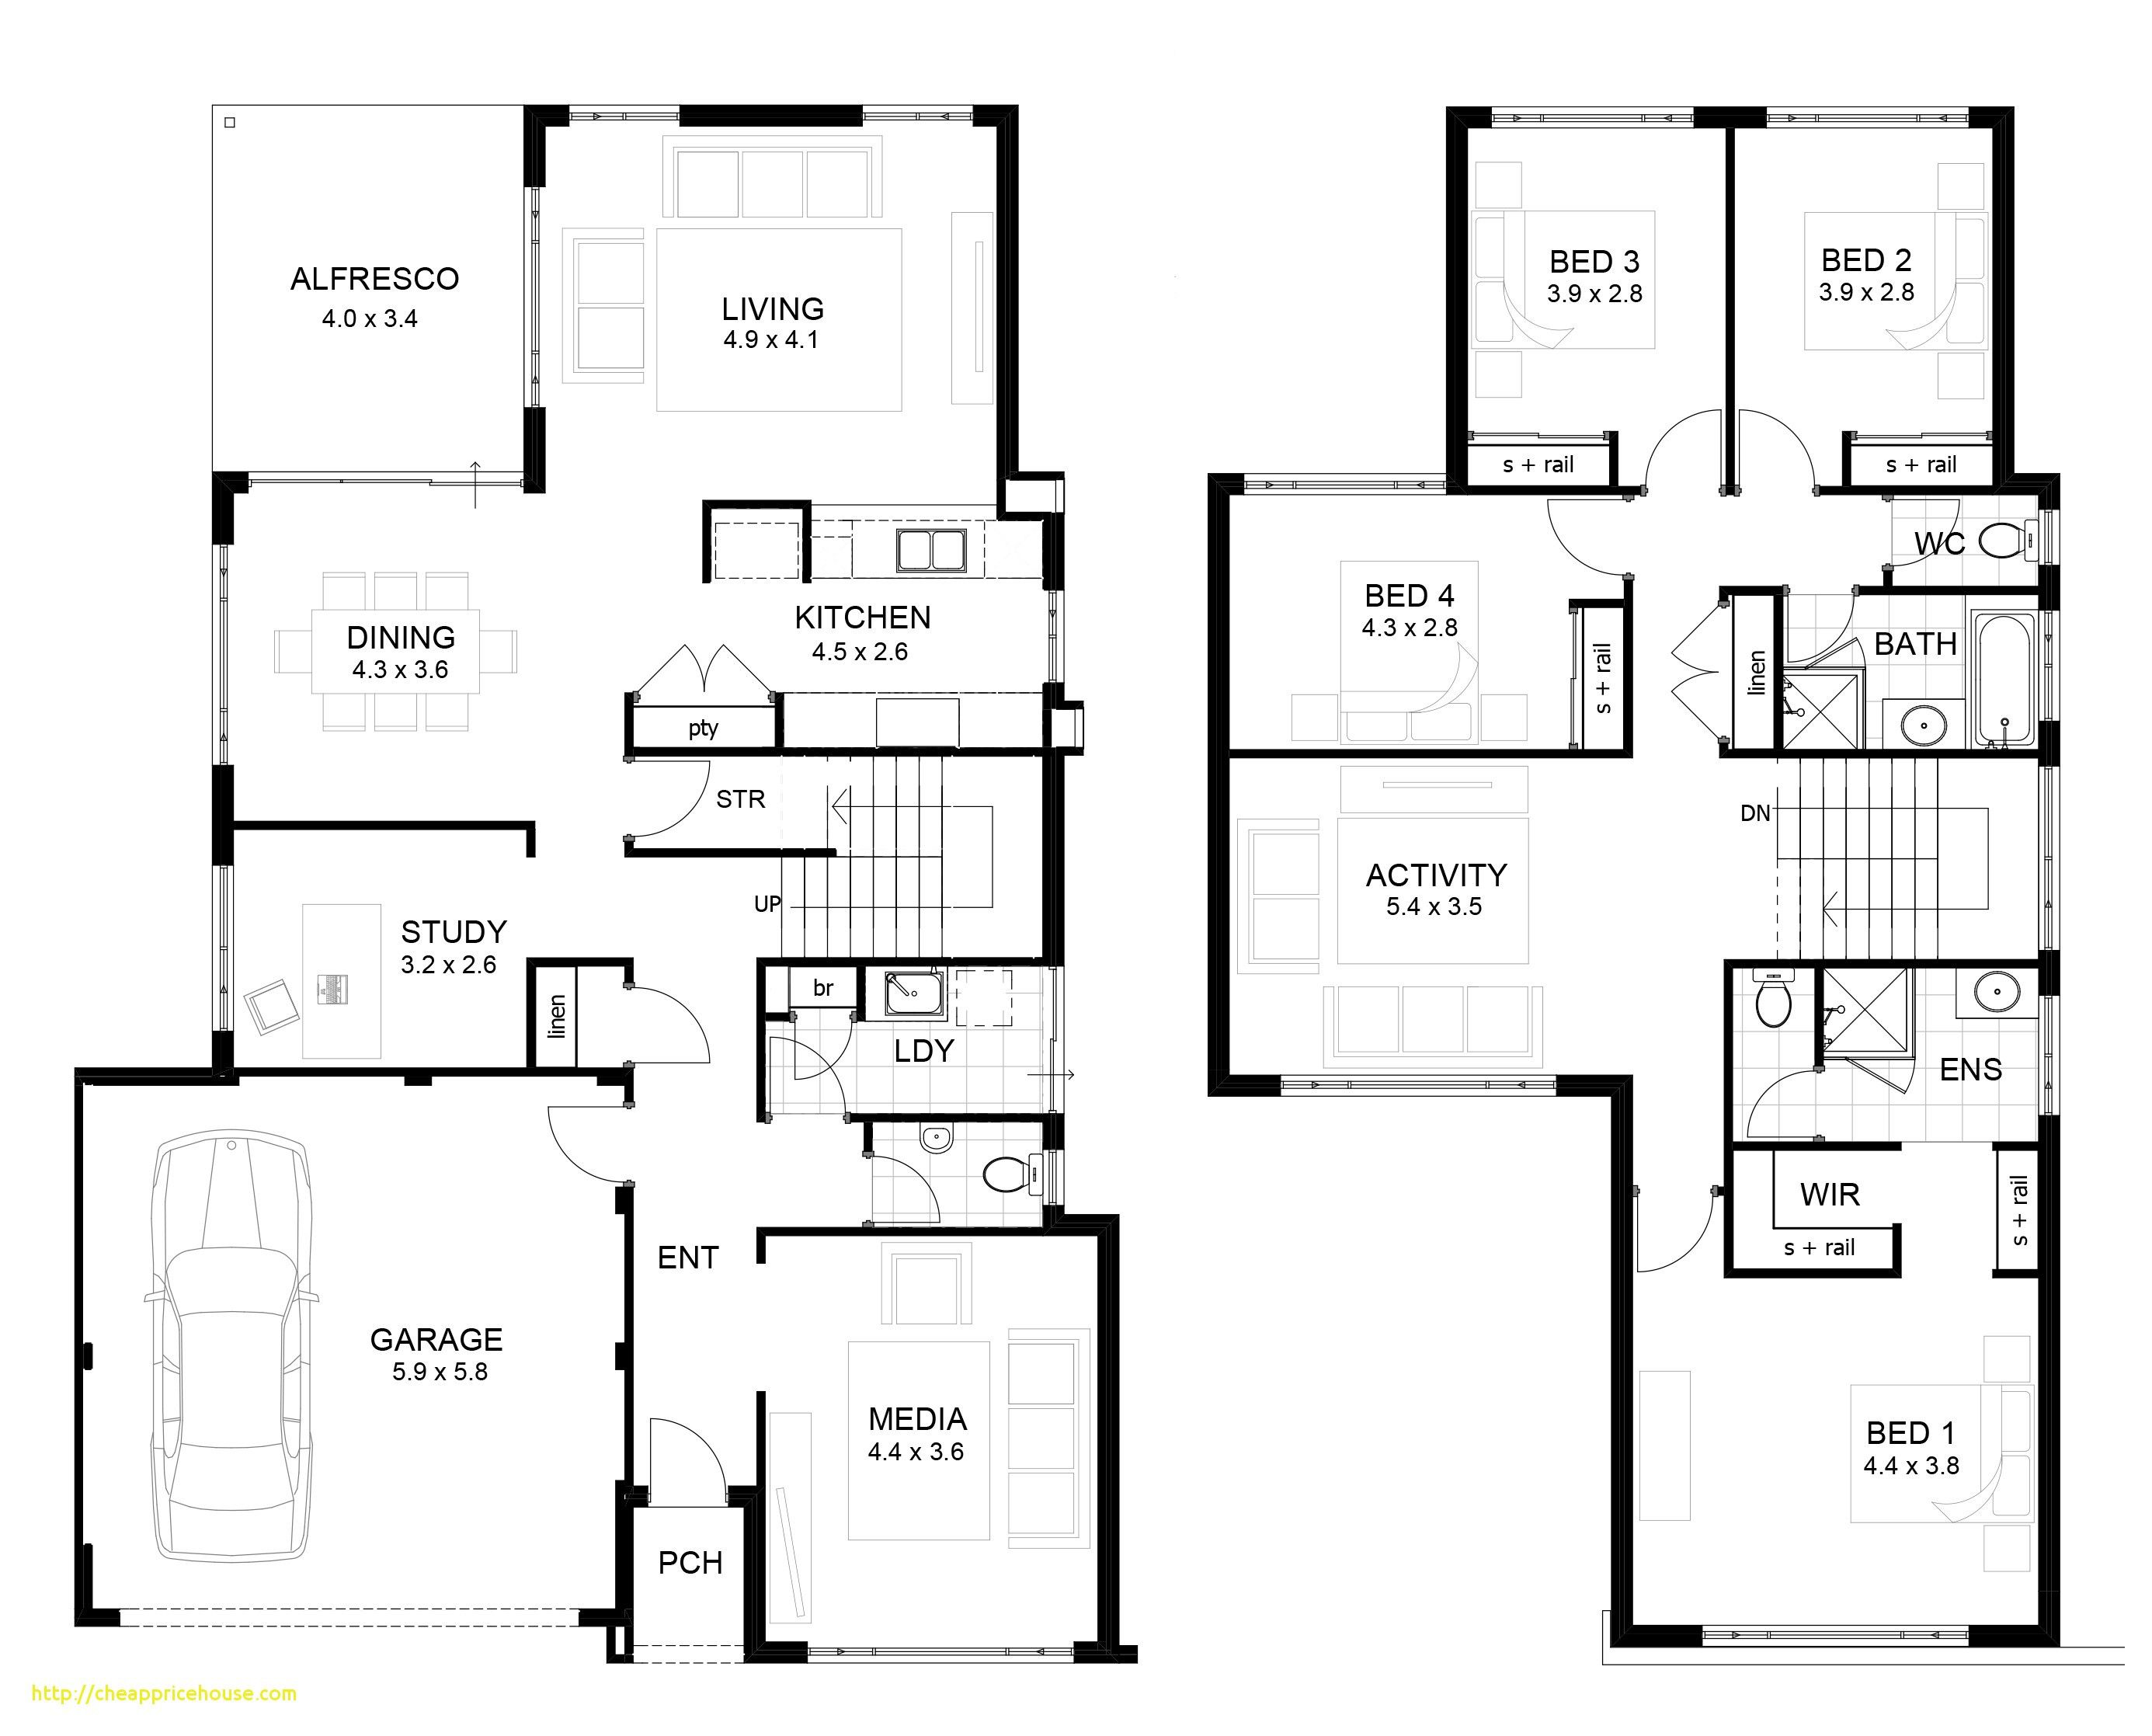 2 Storey House Plans Philippines With Blueprint Luxury Double Story Modern House Plans E Double Storey House Plans Two Storey House Plans House Plans Australia